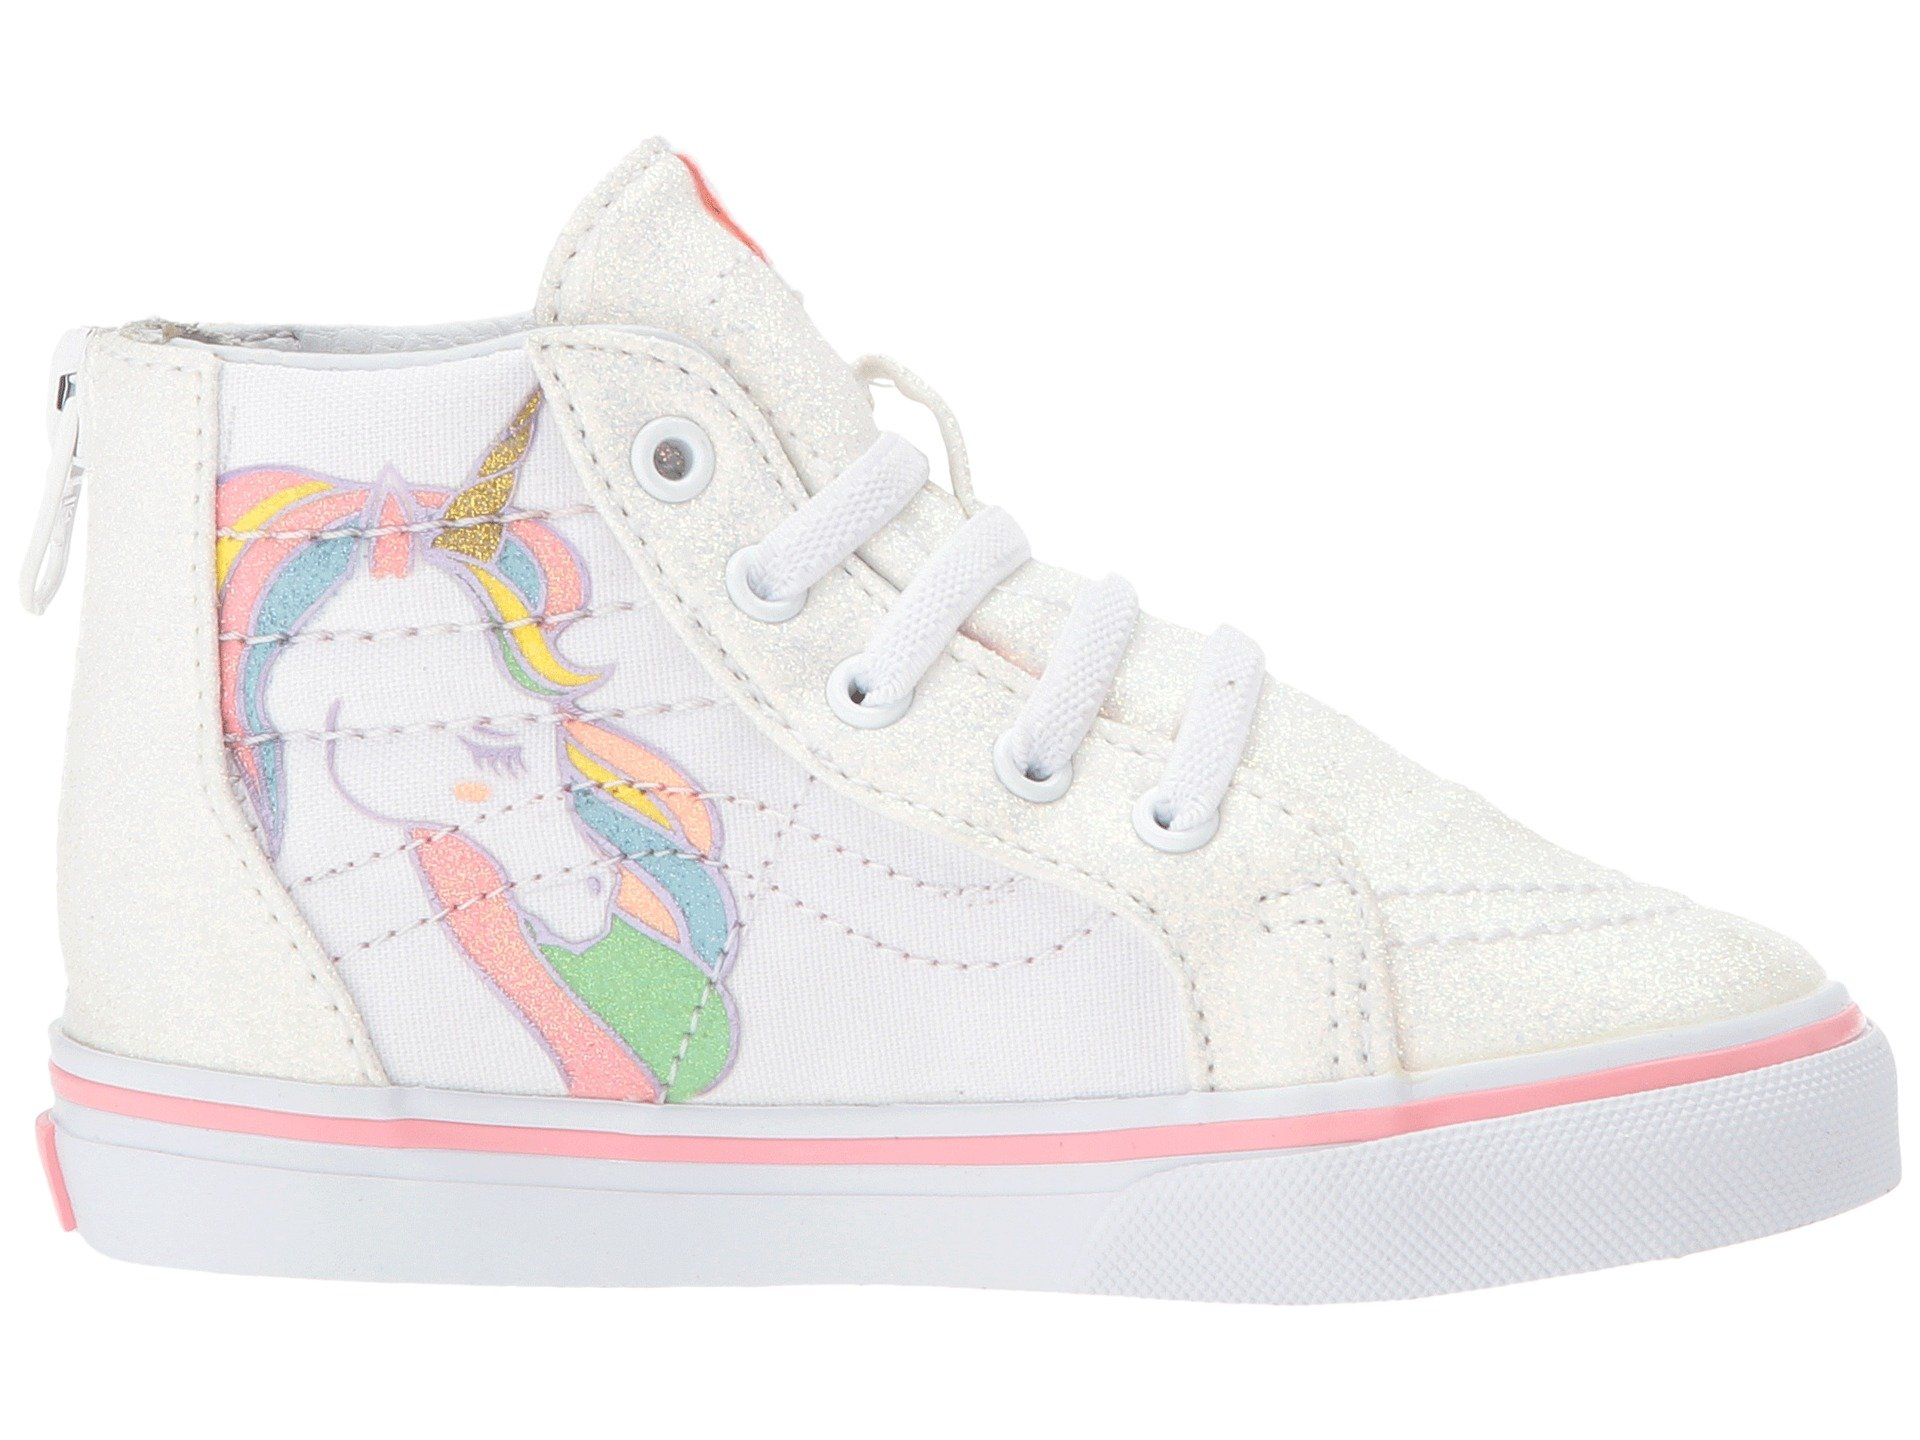 Vans Unicorn Shoes Amazon